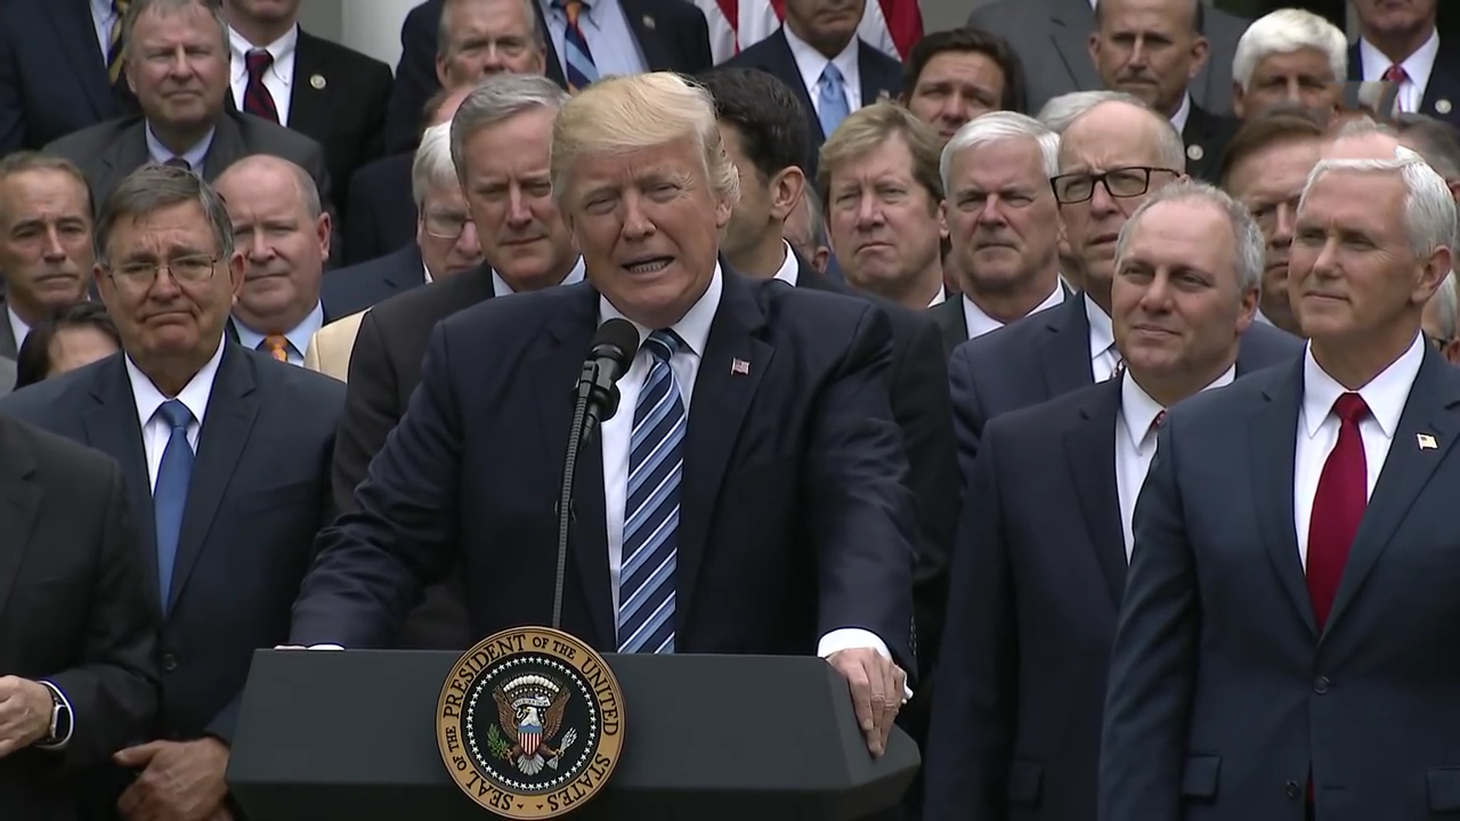 President Trump speaking with a number of key Republicans at the Rose Garden of the White House